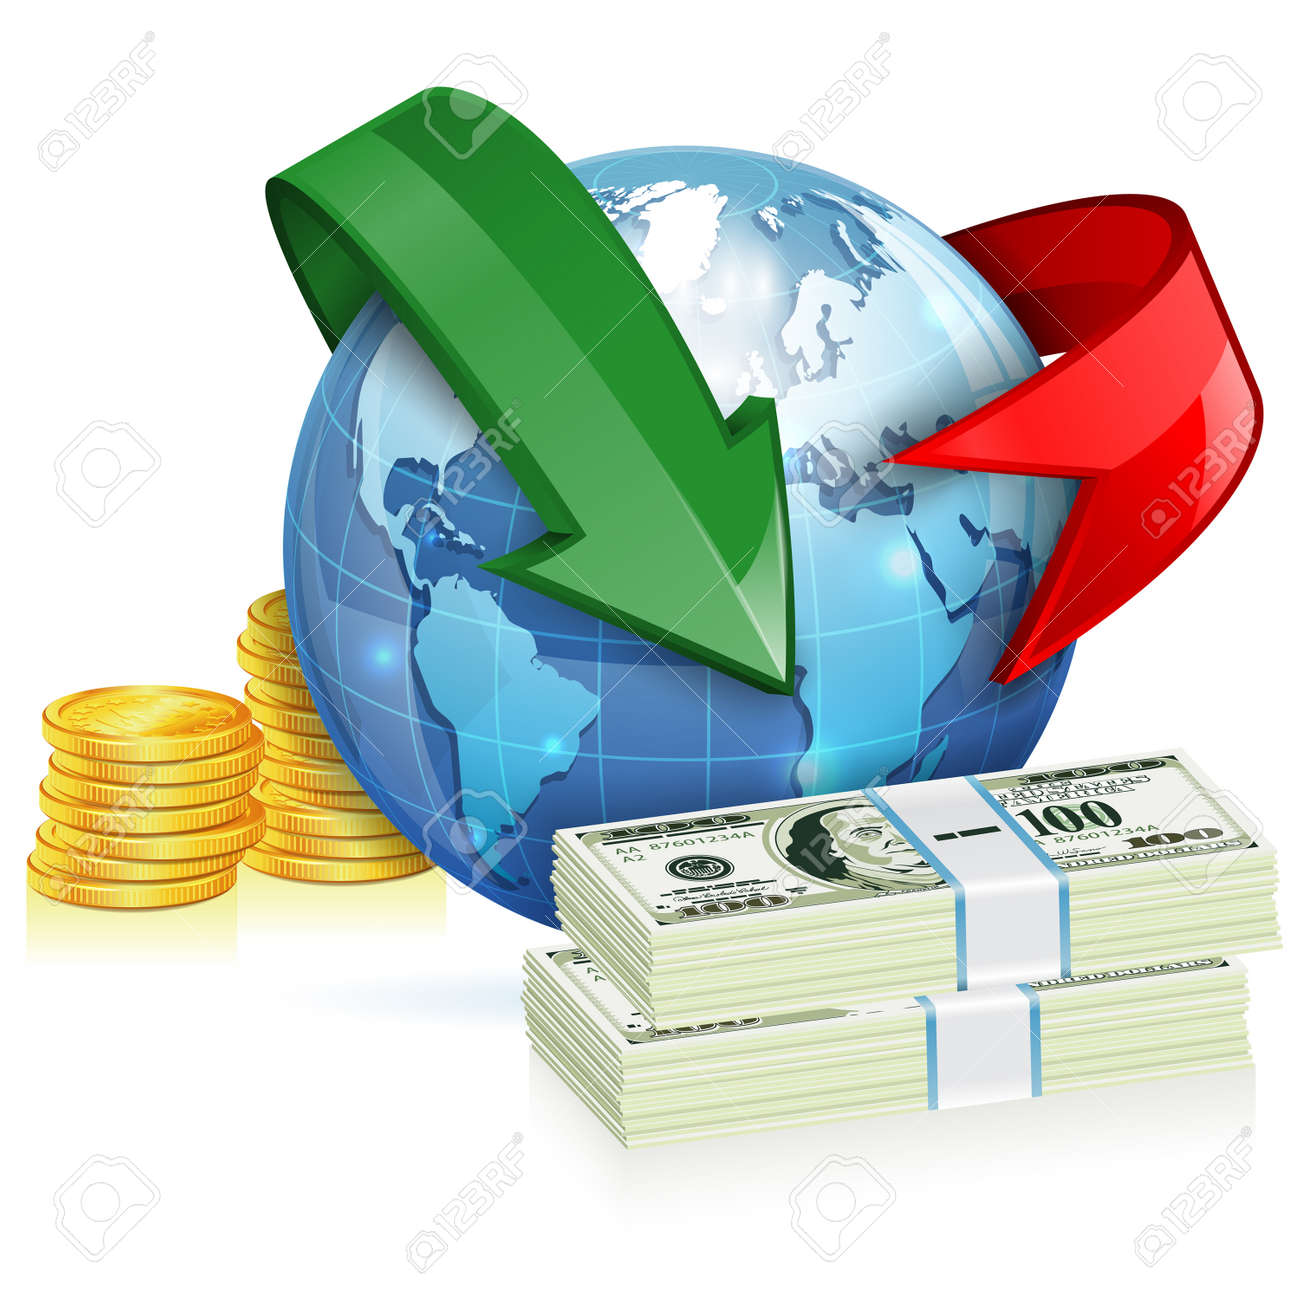 Global Money Transfer Concept with Coins - 31395892